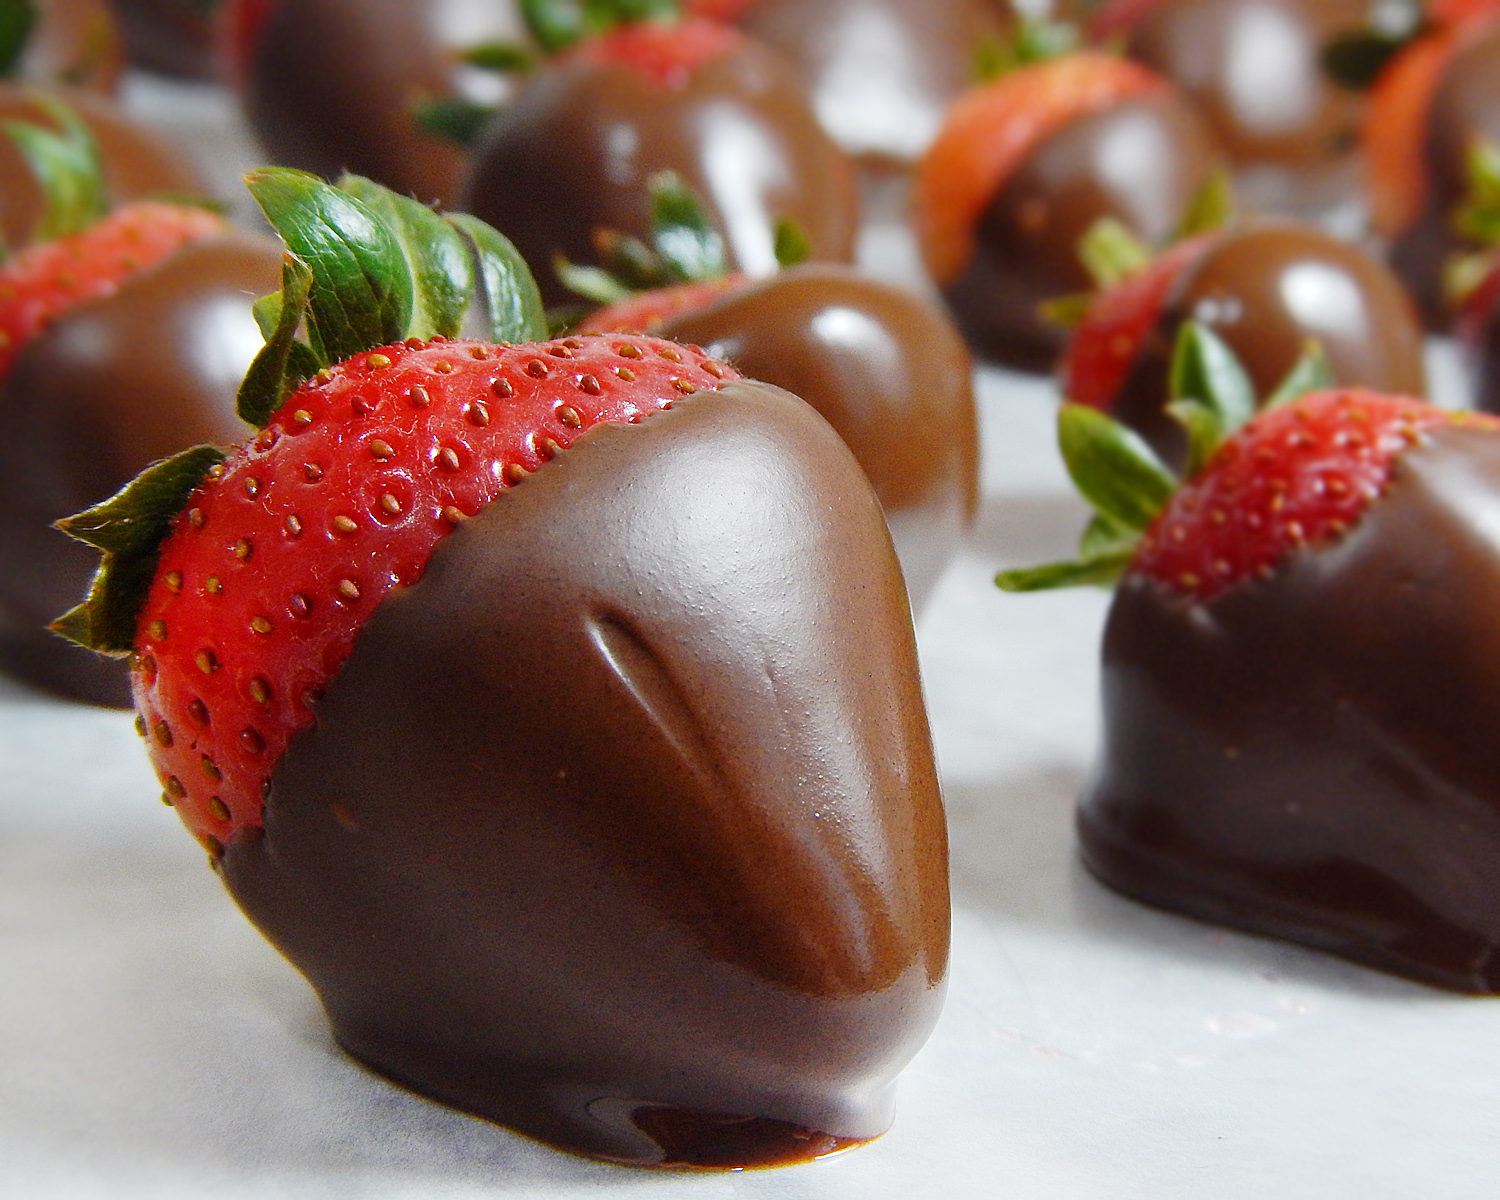 Serve up some chocolate-covered strawberries